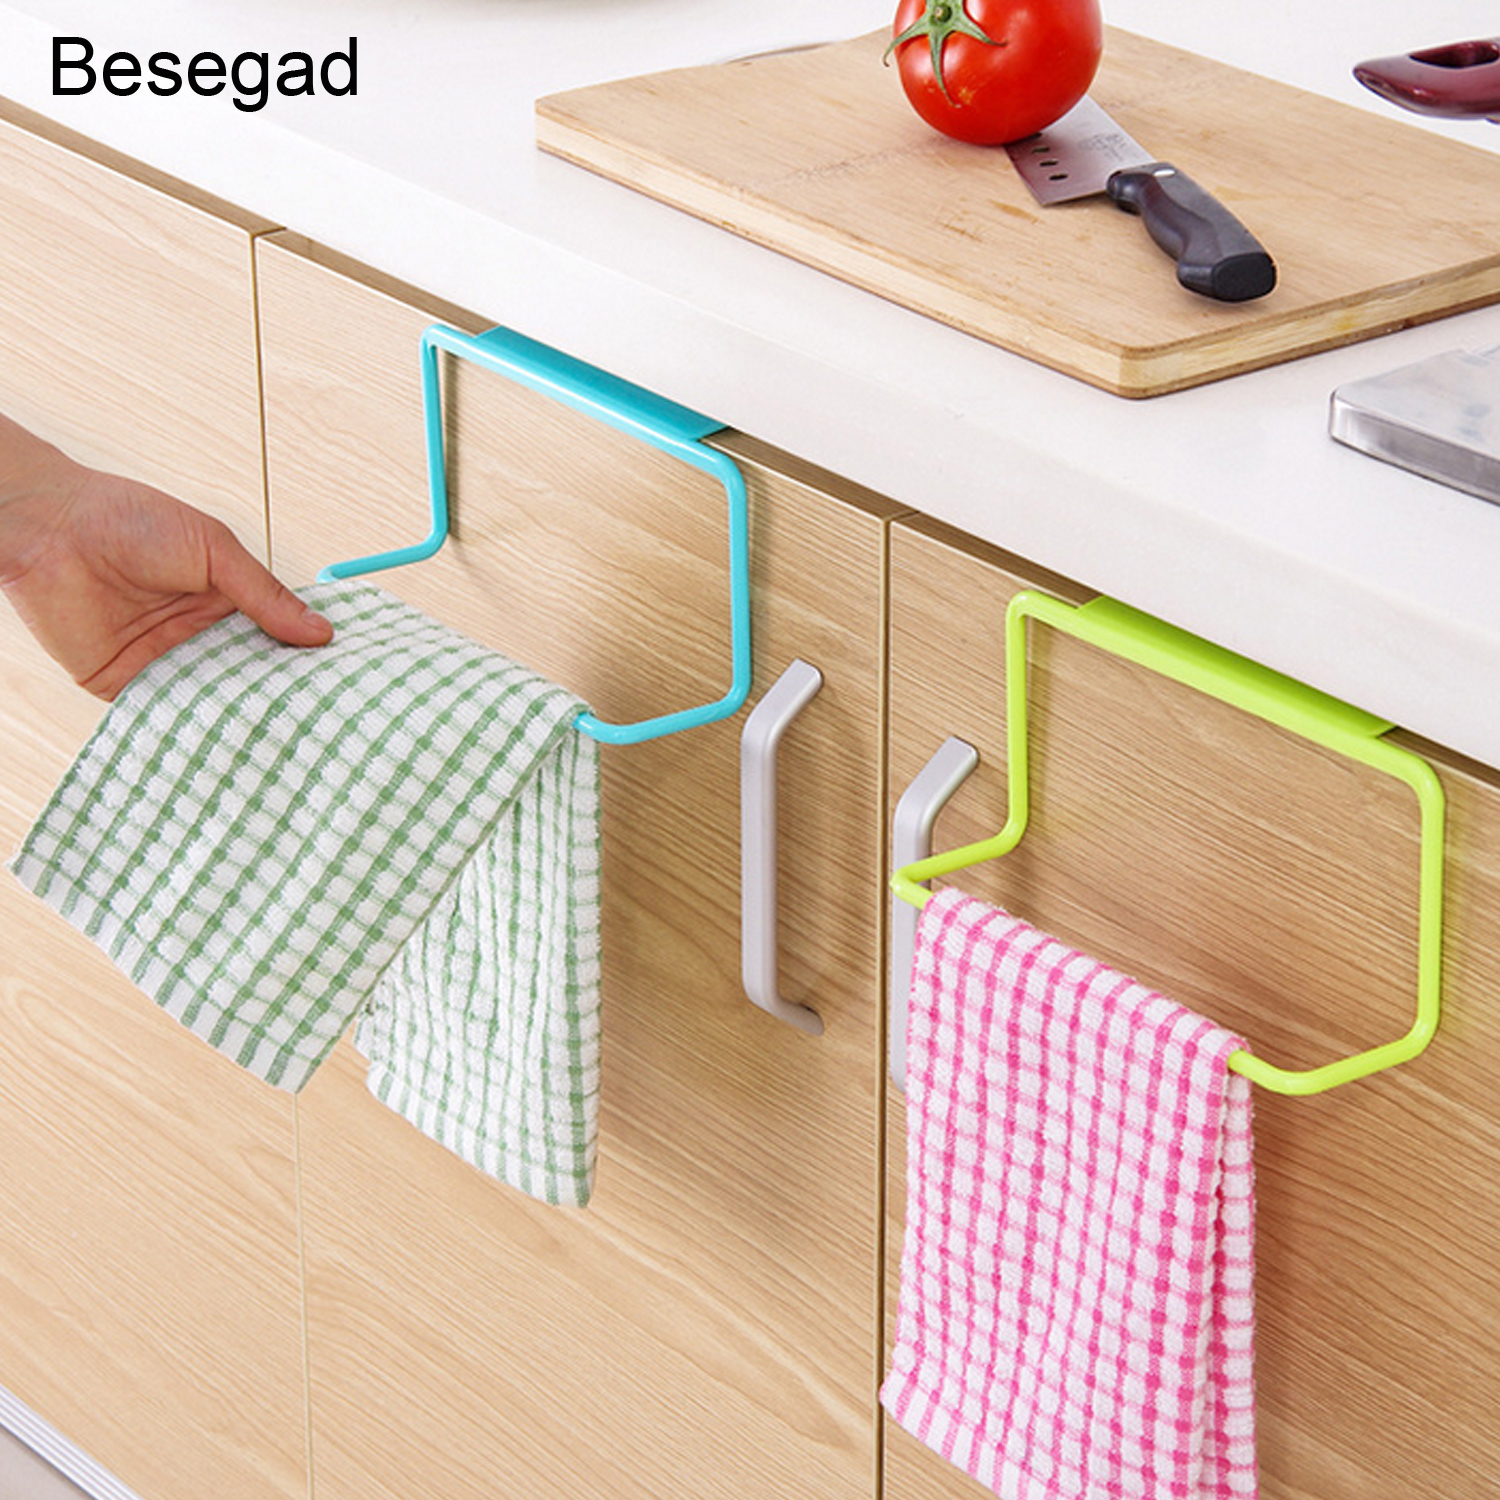 Behogar Multifunction Hanging Towel Holder Storage Rack Holder Hanger Shelf For Bathroom Kitchen Cupboard Cabinet Over Door